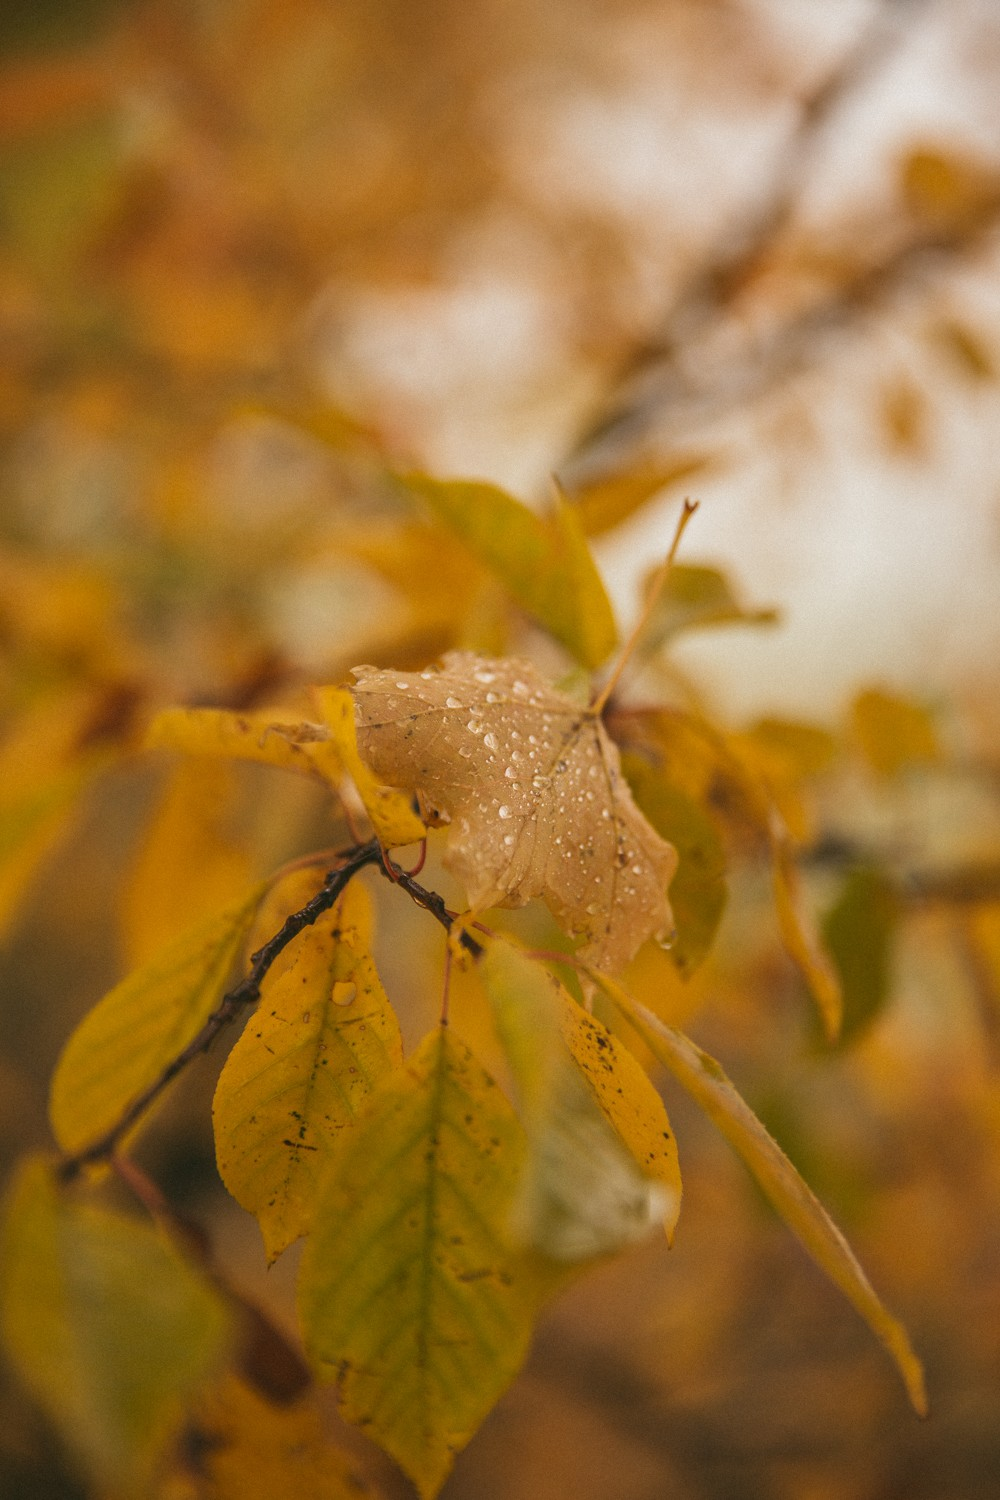 Autumn leaves sprinkled in dew